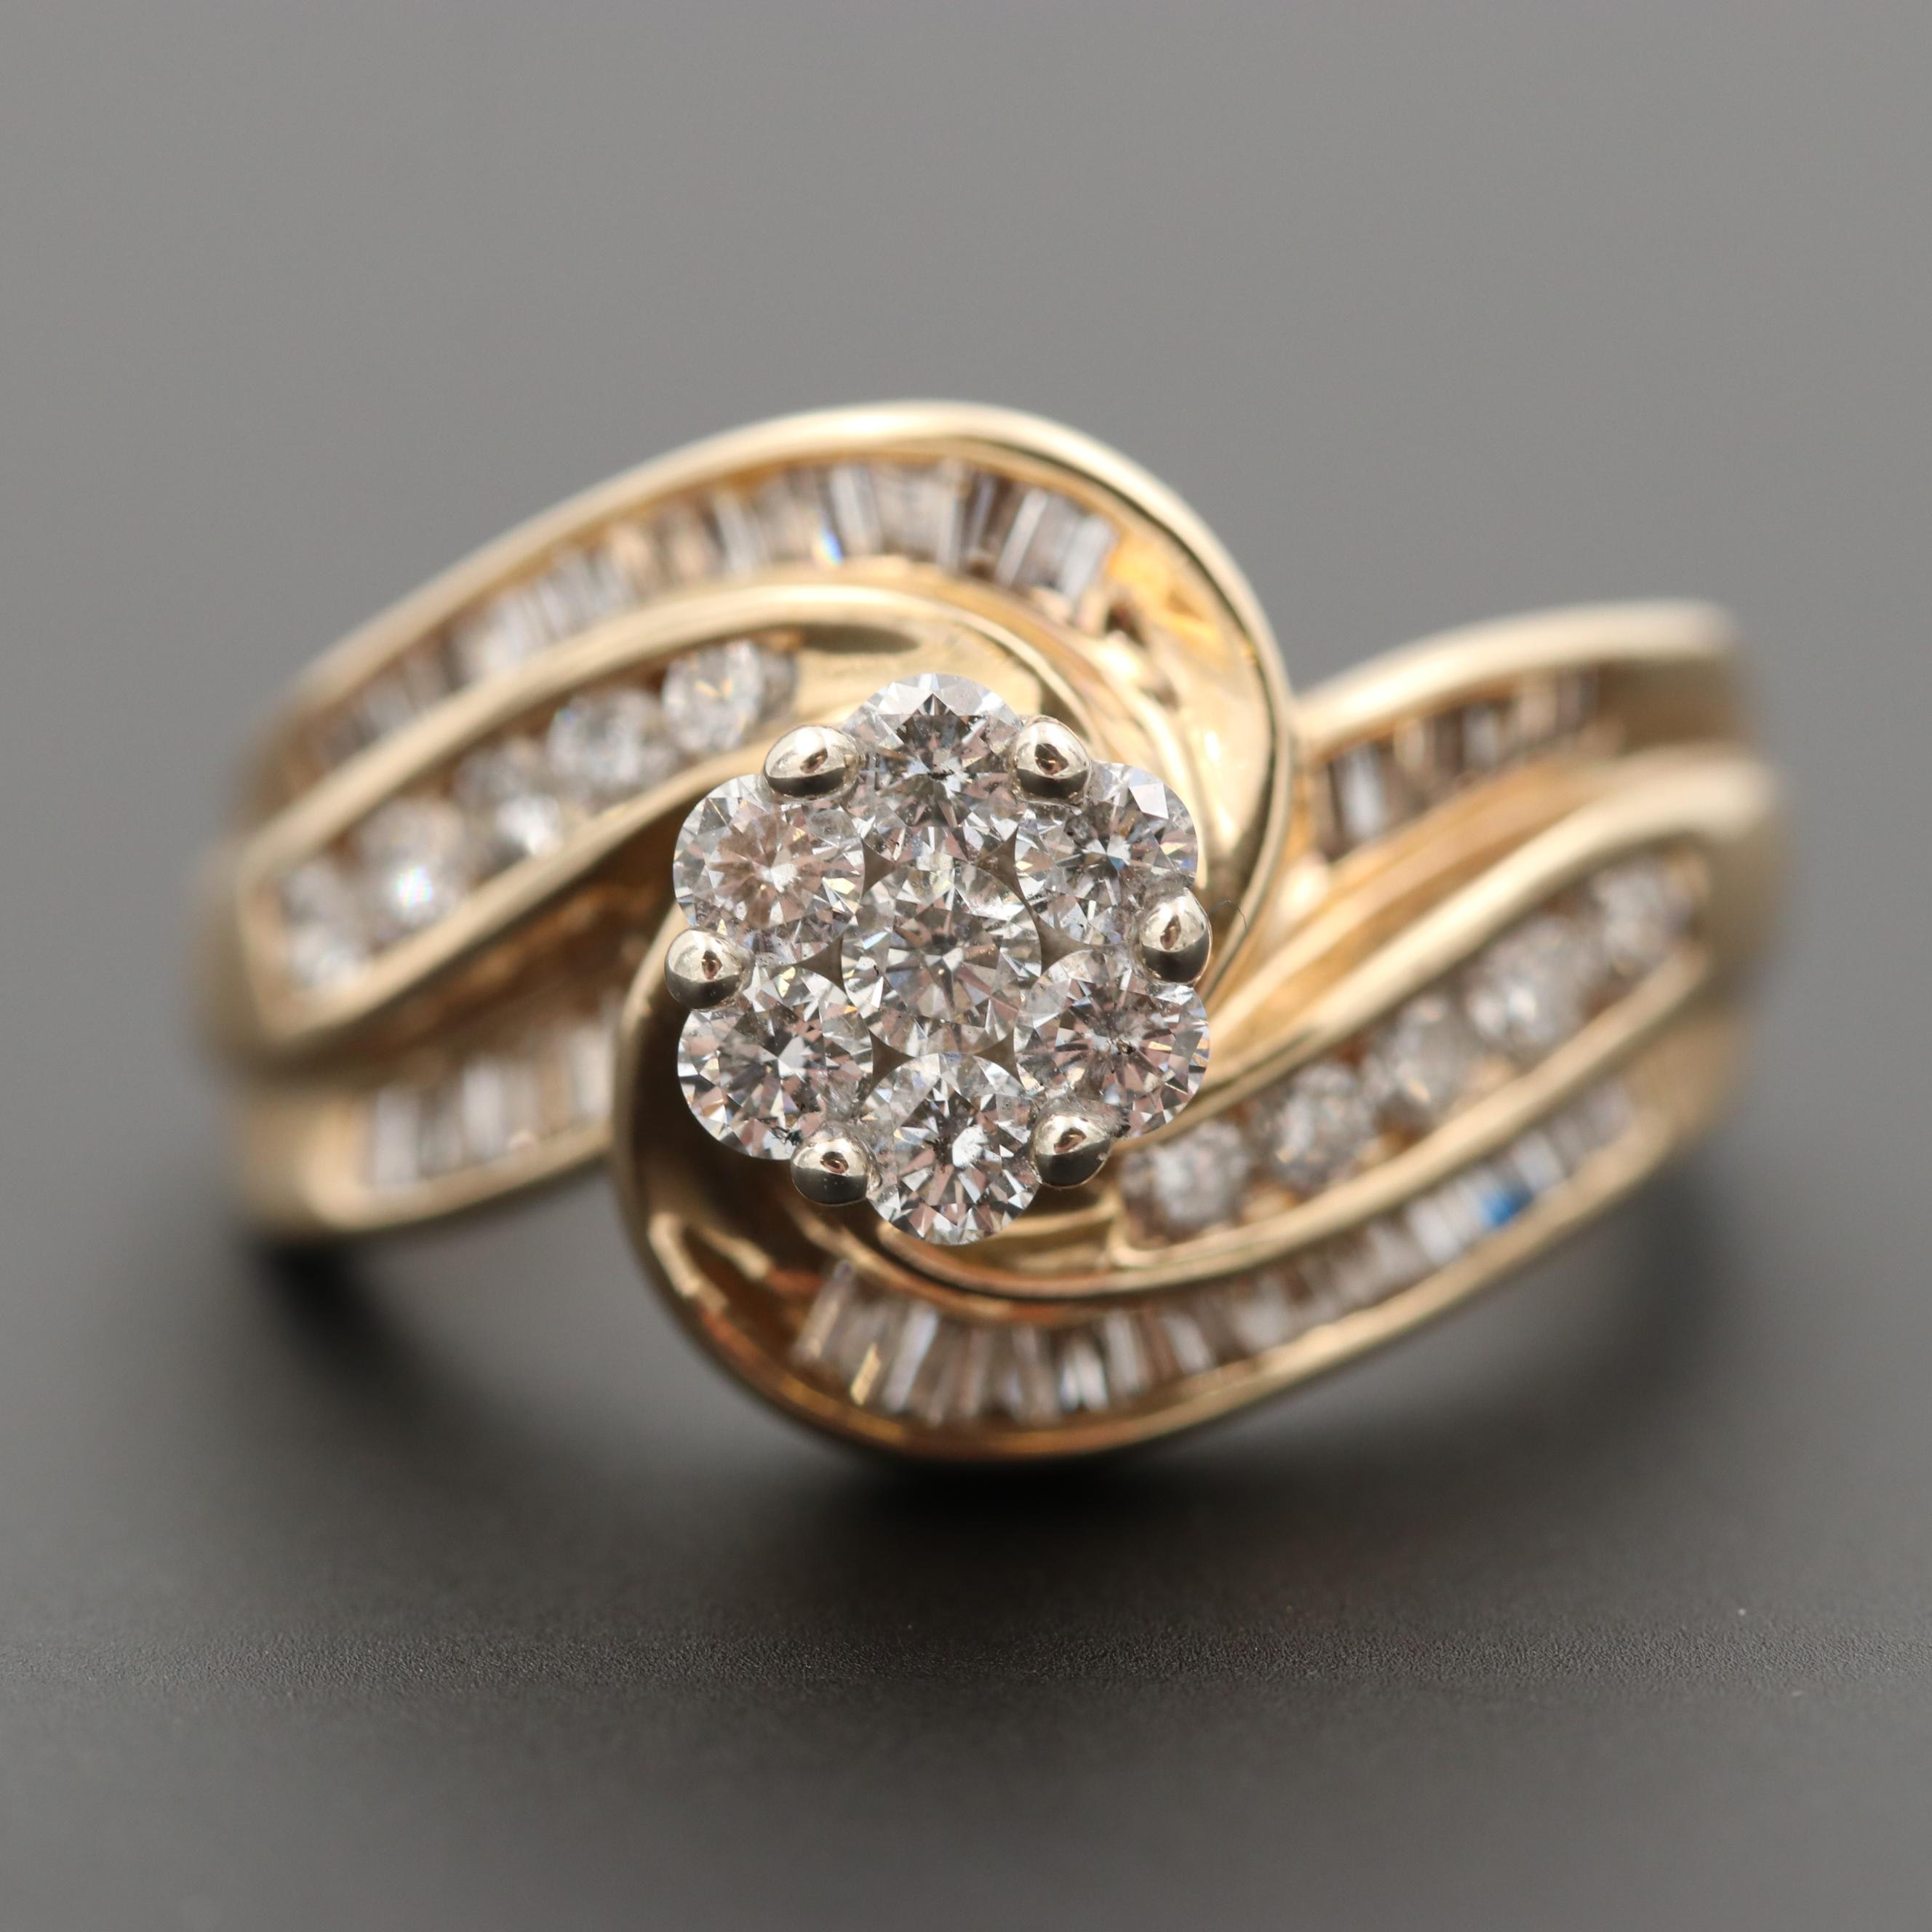 10K Yellow Gold 1.04 CTW Diamond Cluster Ring